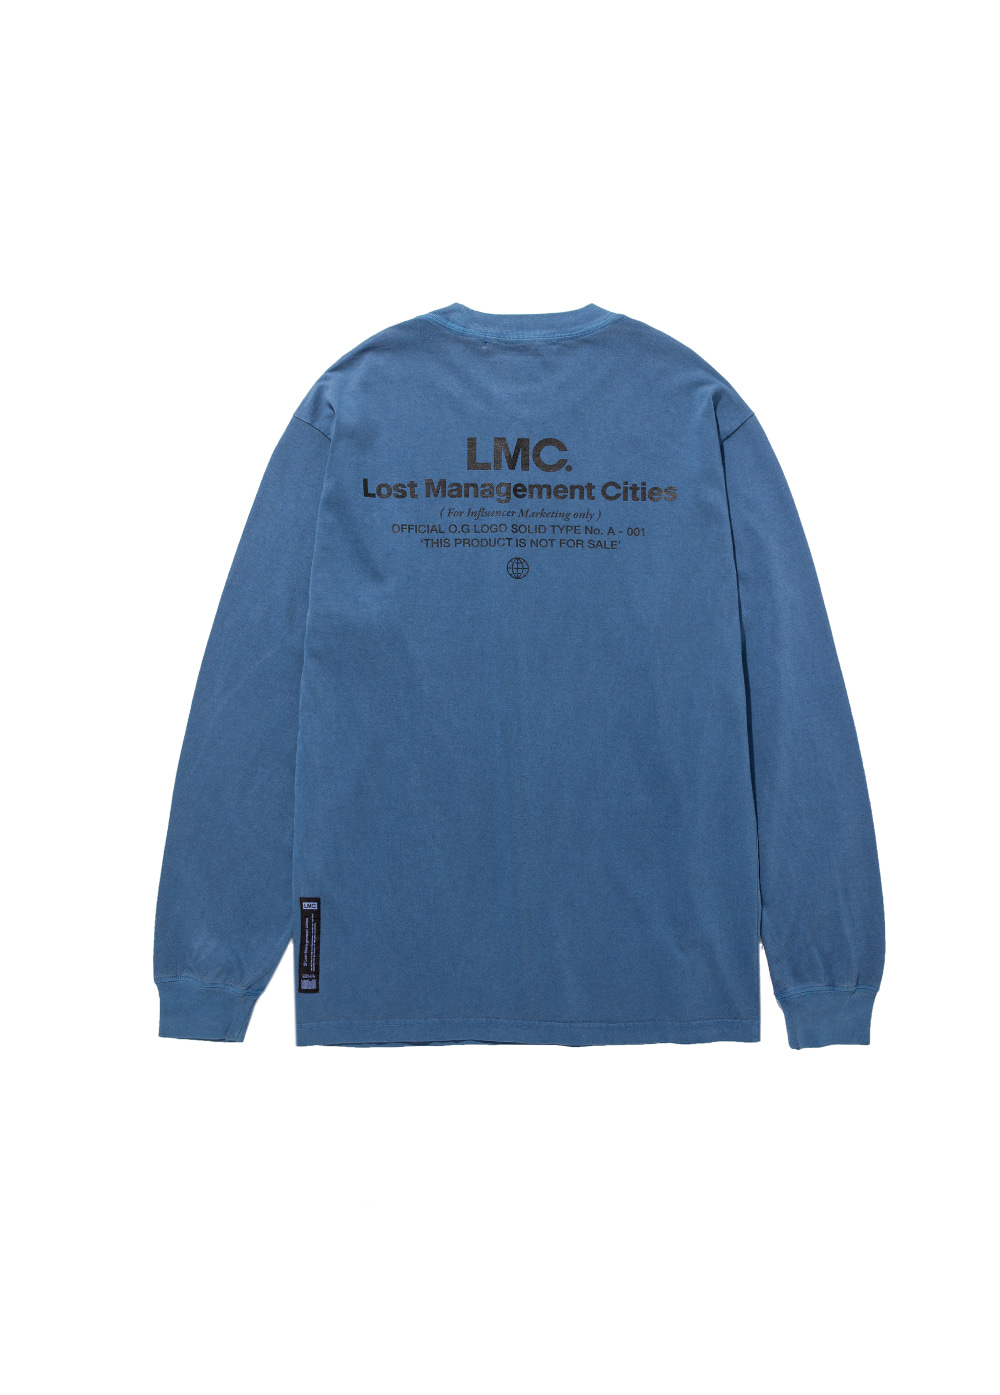 LMC INFLUENCER LONG SLV TEE dark blue